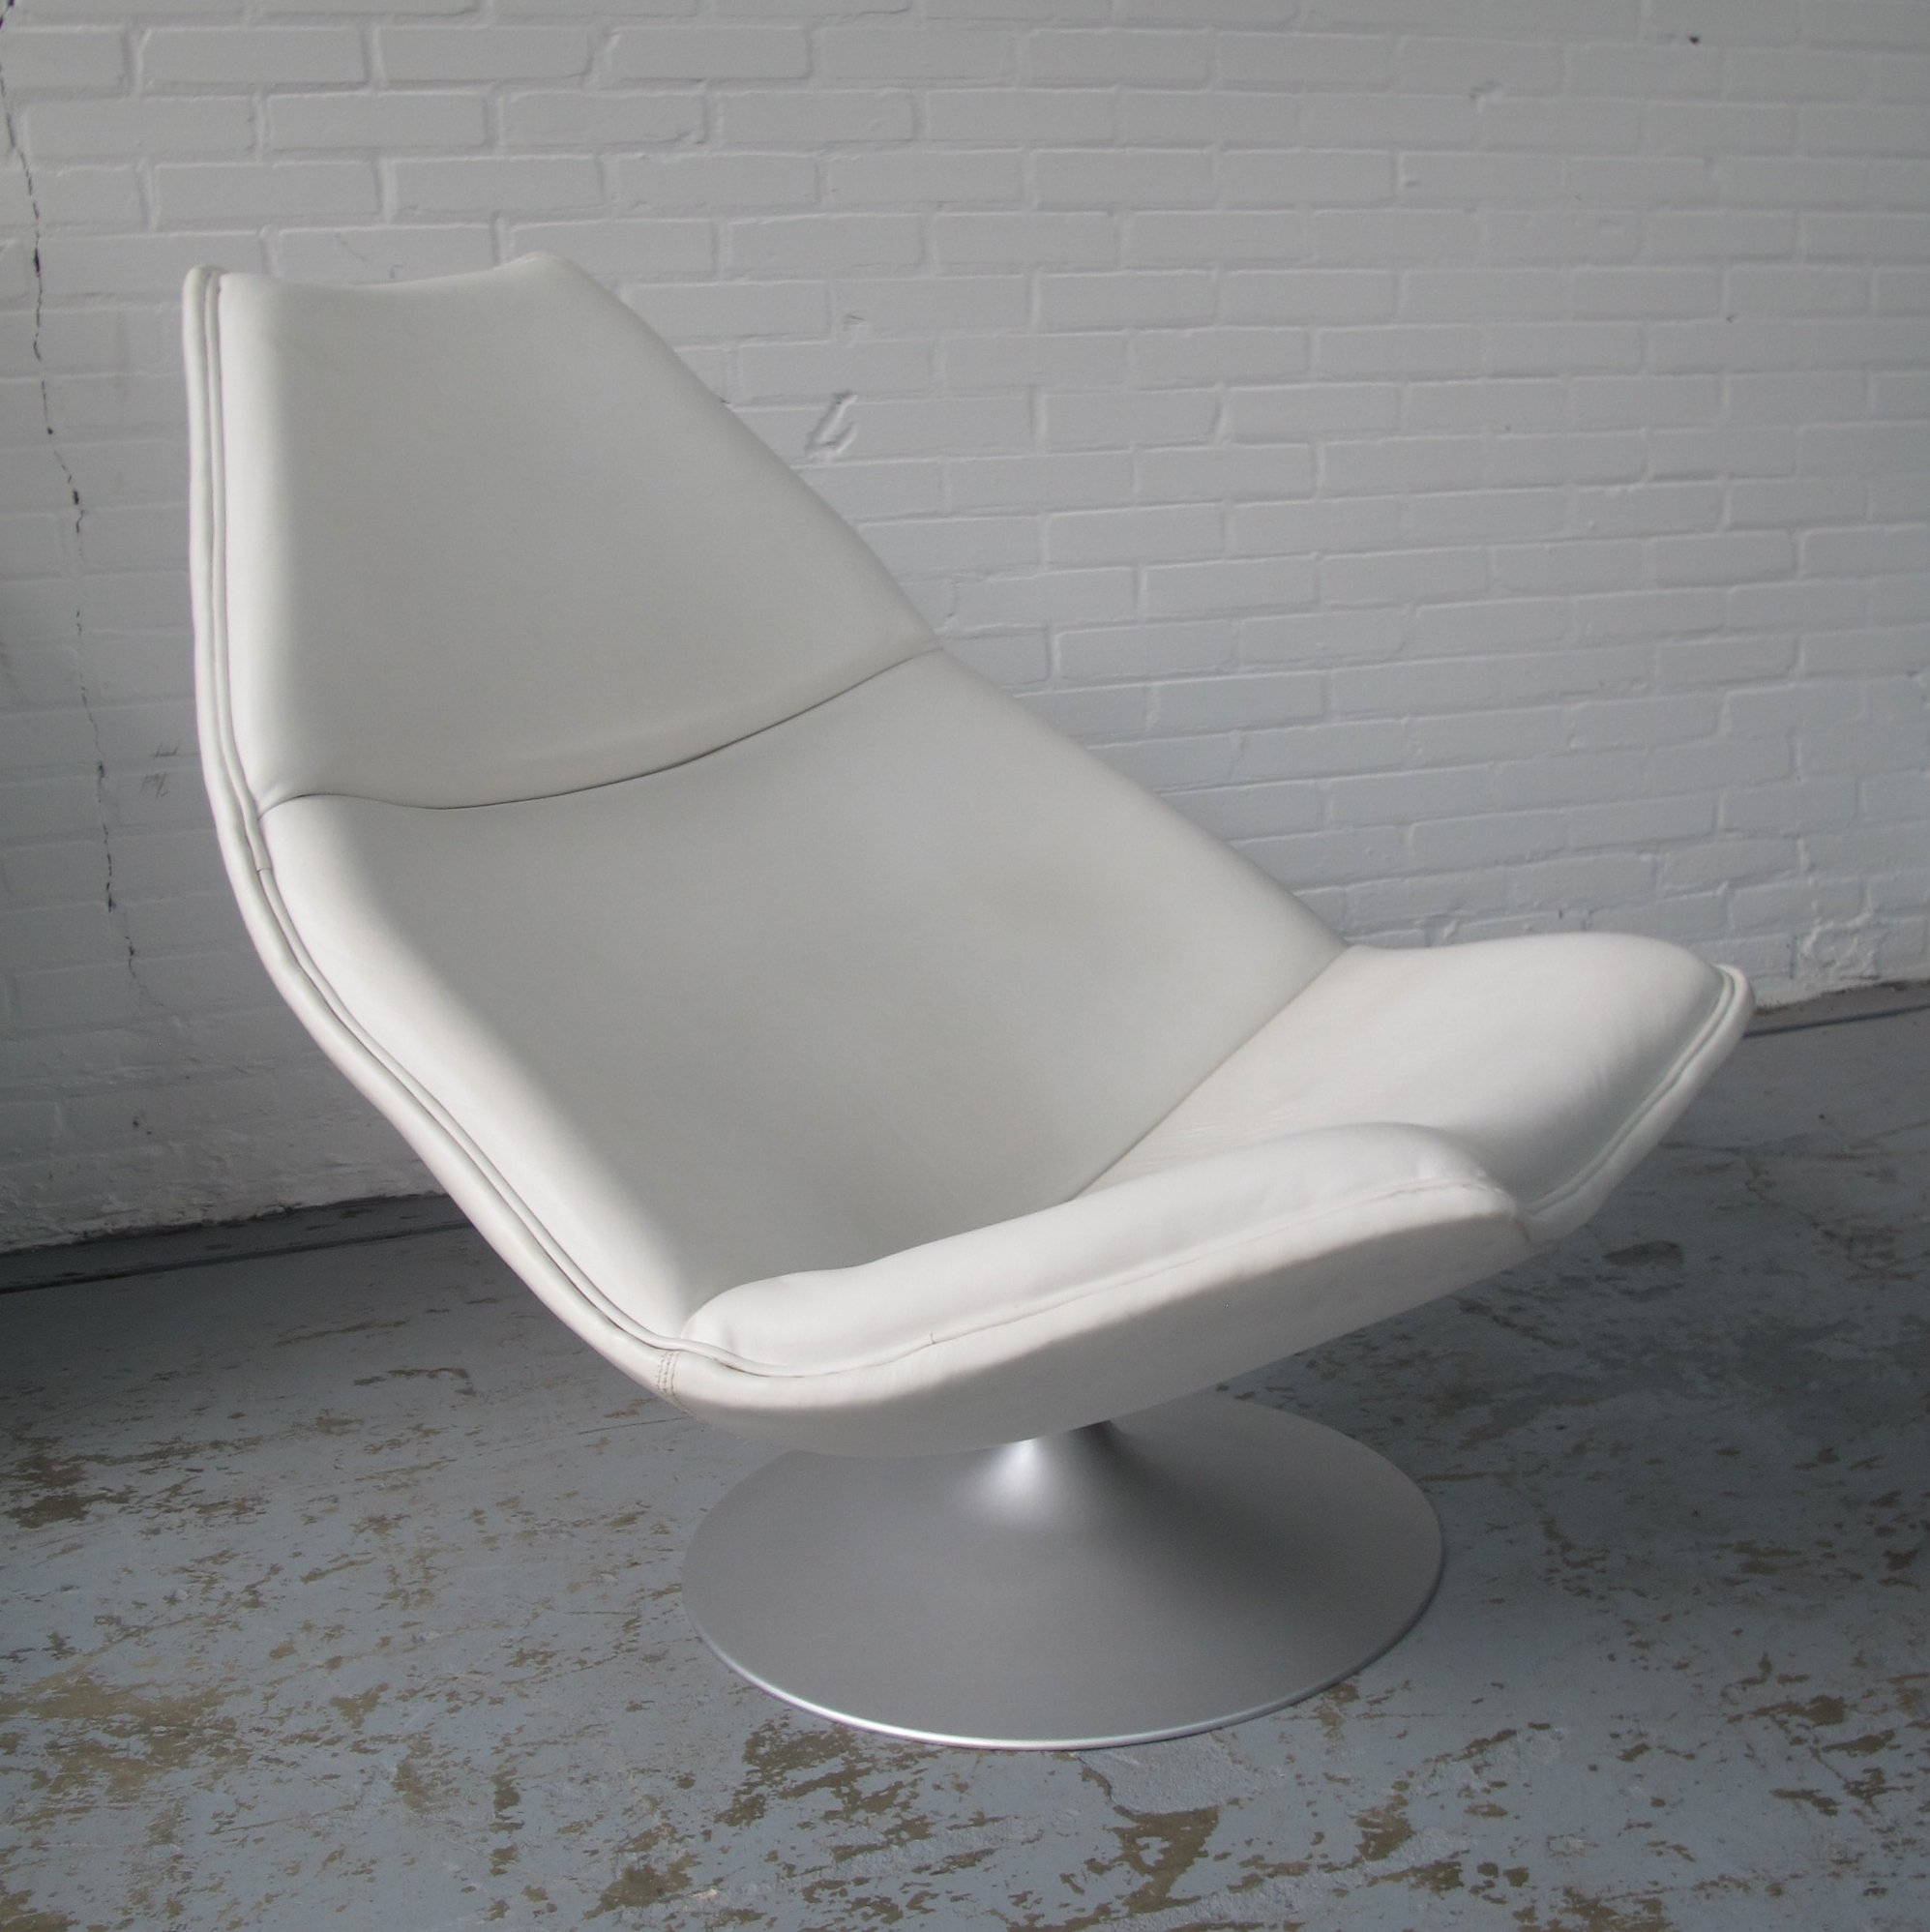 Charming F511 White Leather Lounge Chair By Geoffrey Harcourt For Artifort, 1970s